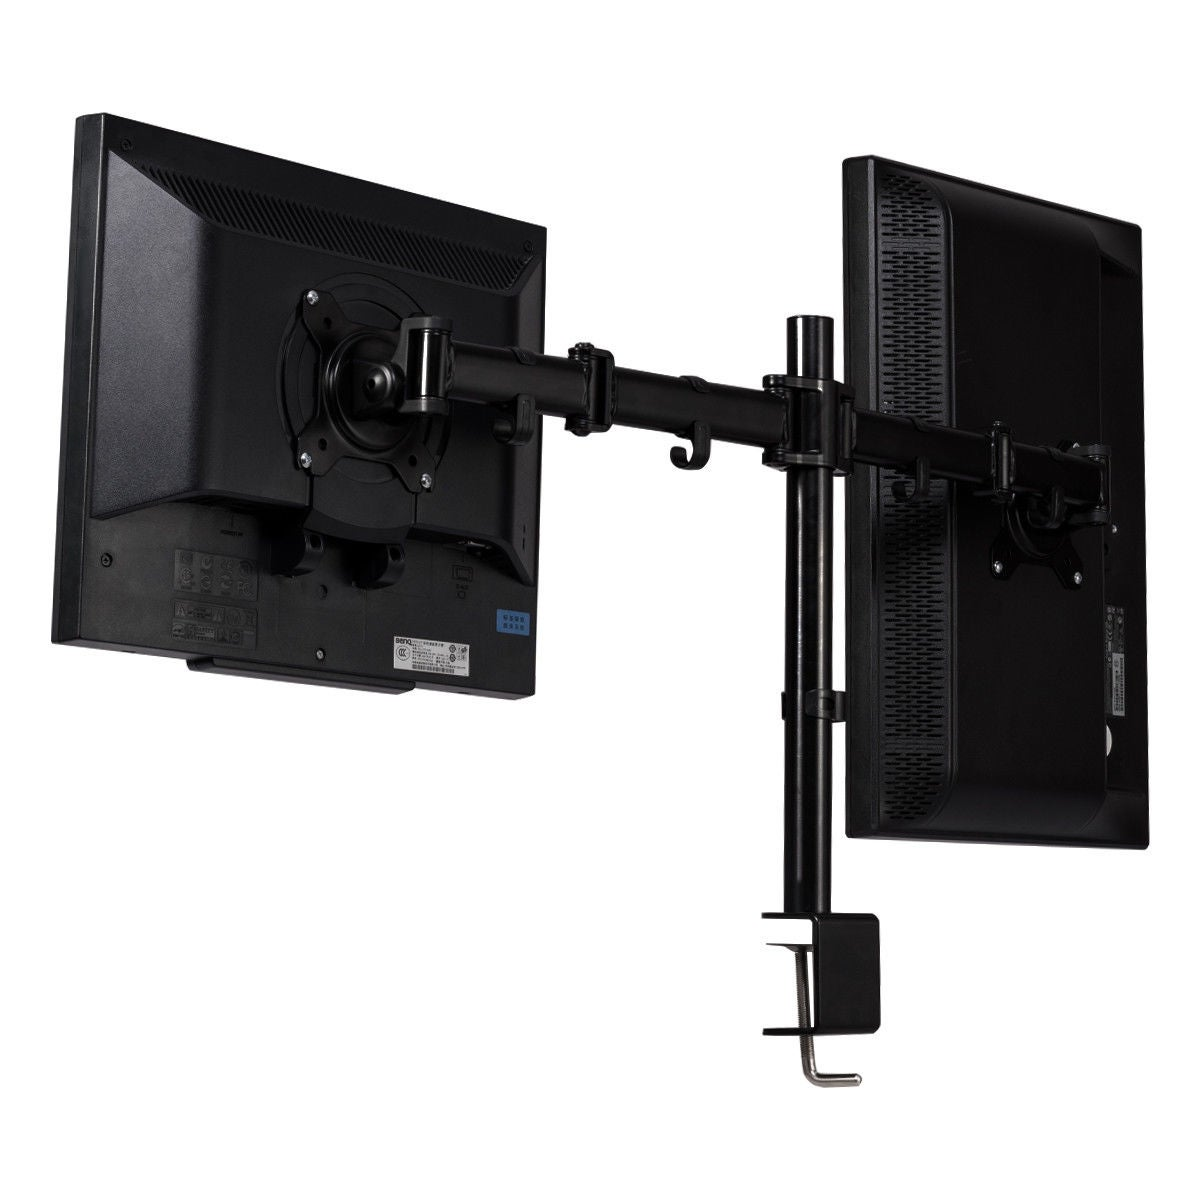 Dual 2 LCD LED Monitor Table Desk Mount Stand Adjustable Arm 2 Screen up to 27/""